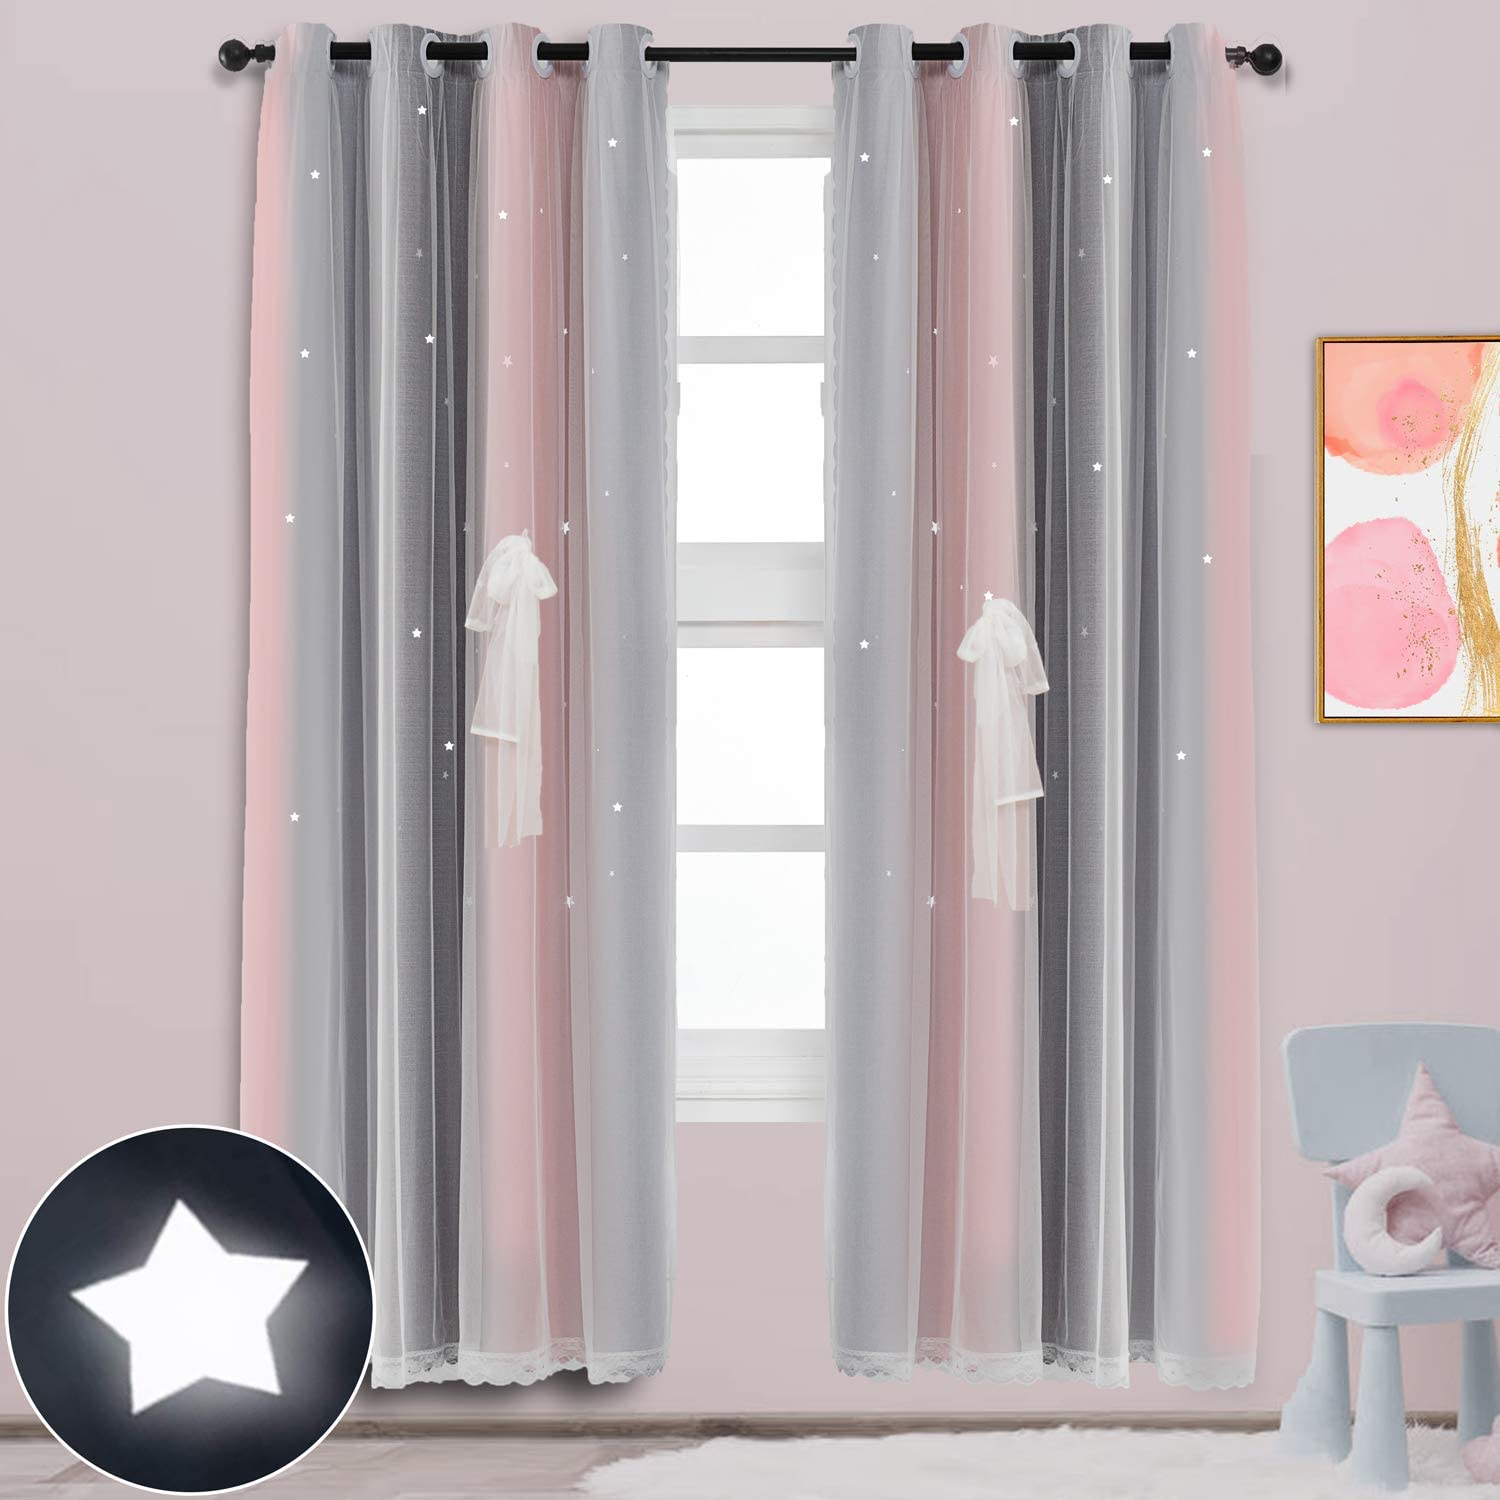 ARTBECK Star Curtains Kids Curtains for Girls Bedroom Living Room Rainbow Ombre Stripe Blackout Curtain Double Layer Star Cut Out Gradient Grommet Window Curtains (1 Pc | 52W x 84L, Stripe Pink)